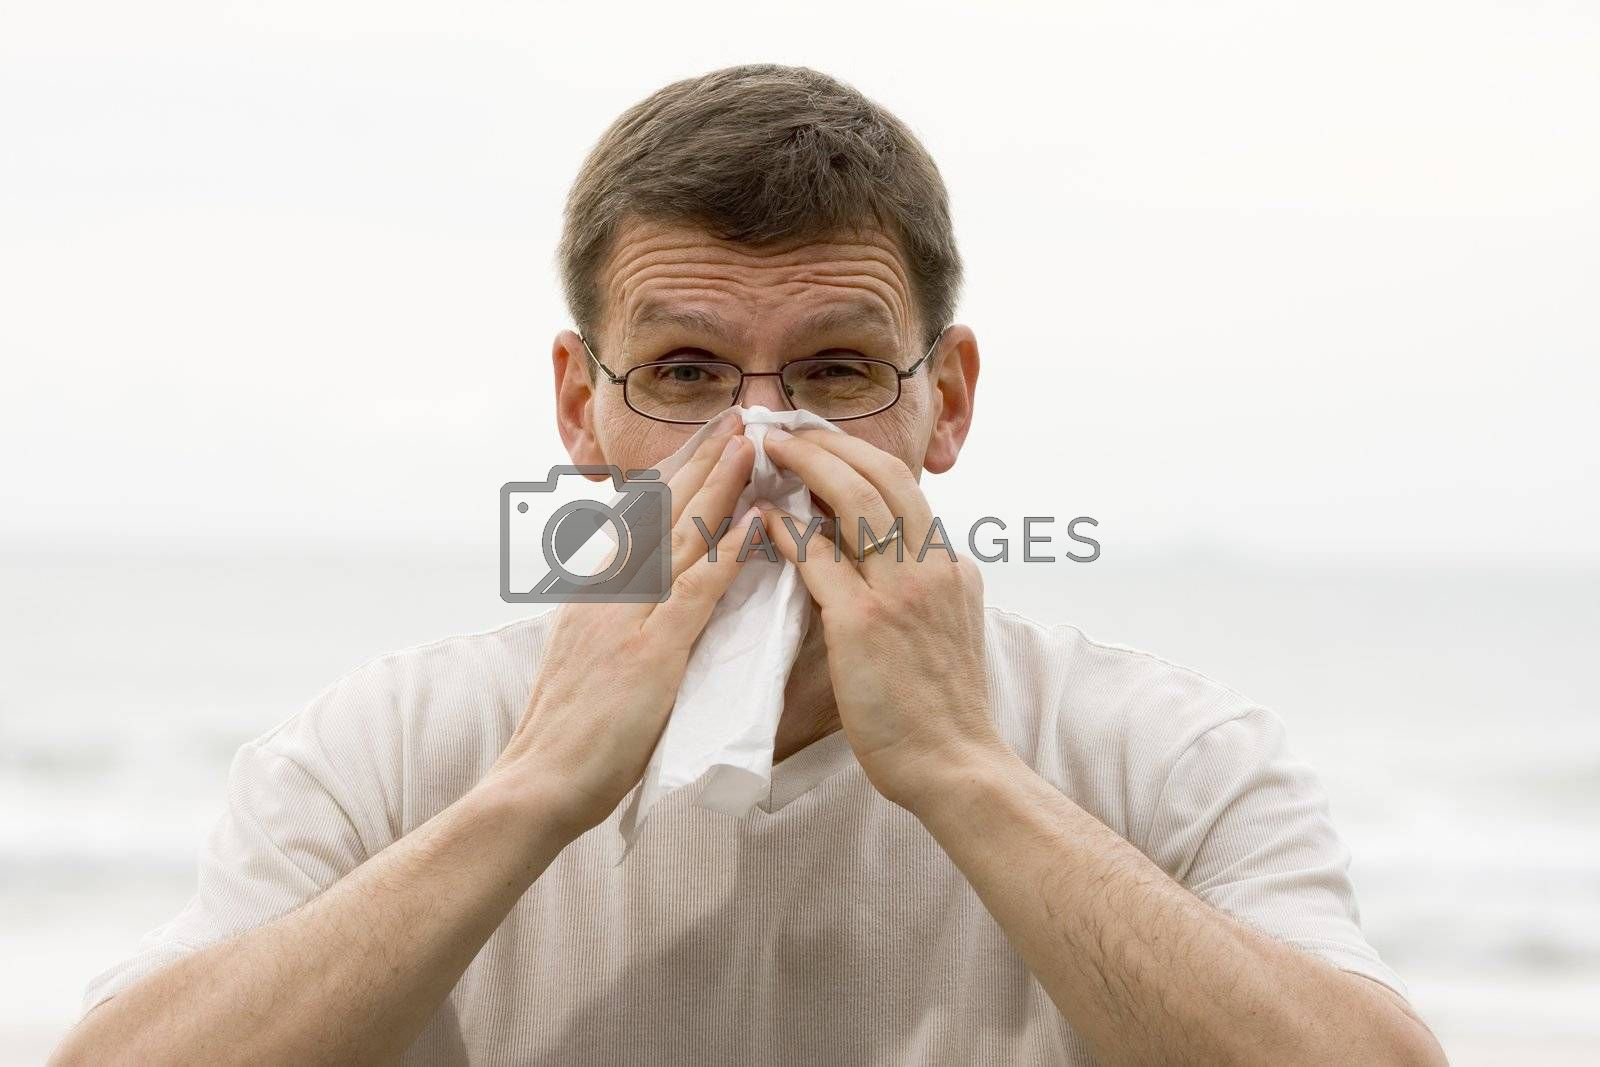 Royalty free image of Sneezing man  by ArtmannWitte